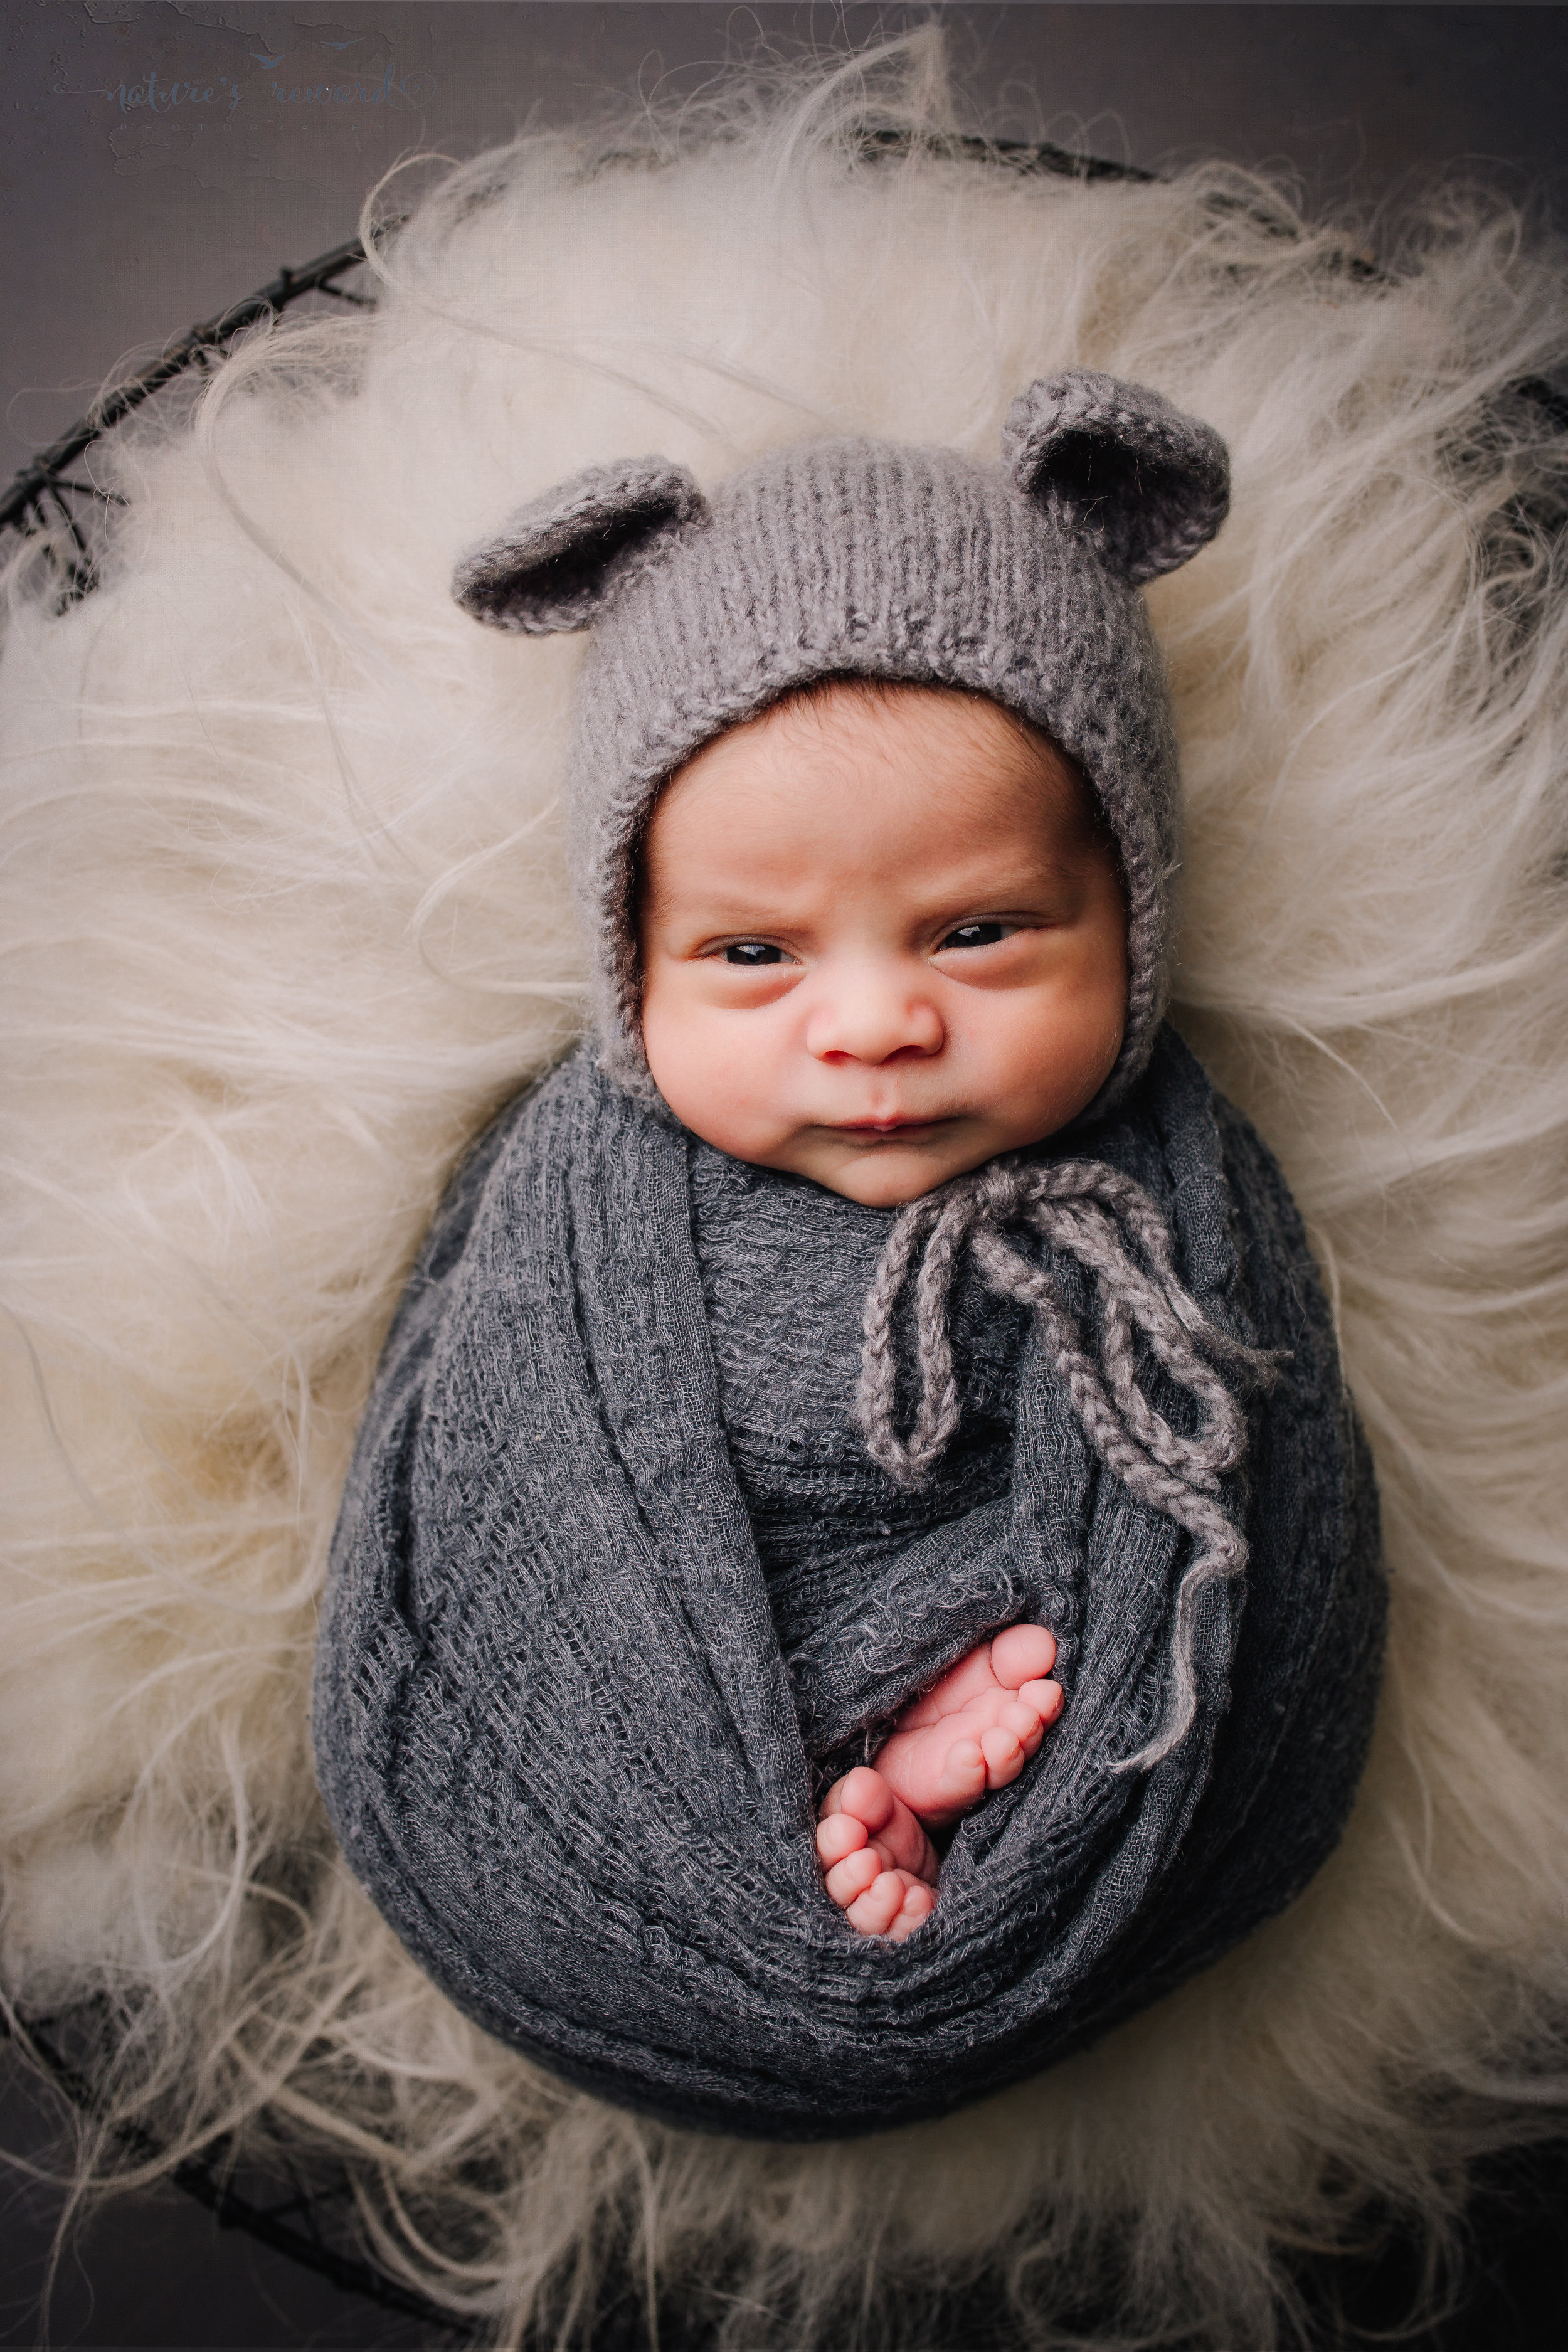 Newborn Baby boy swaddled in grey while laying on a bed of white fur in a metal bowl wearing a teddy bear bonnet - a portrait by Nature's Reward Photography